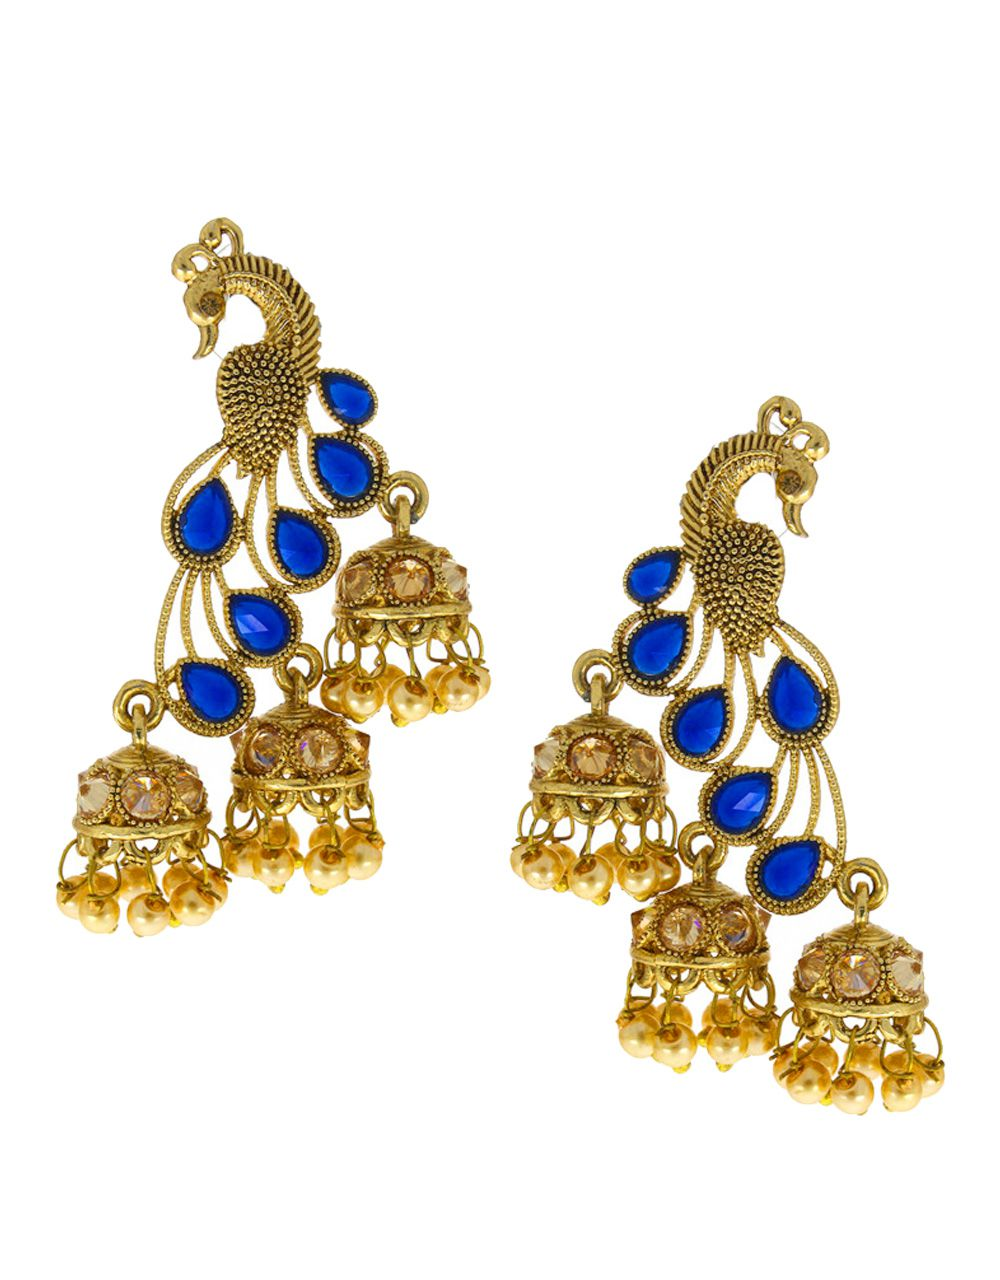 Anuradha Art Blue Colour Styled With Peacock Inspired Beautiful Designer Traditional Jhumki/Jhumkas Earrings For Women/Girls